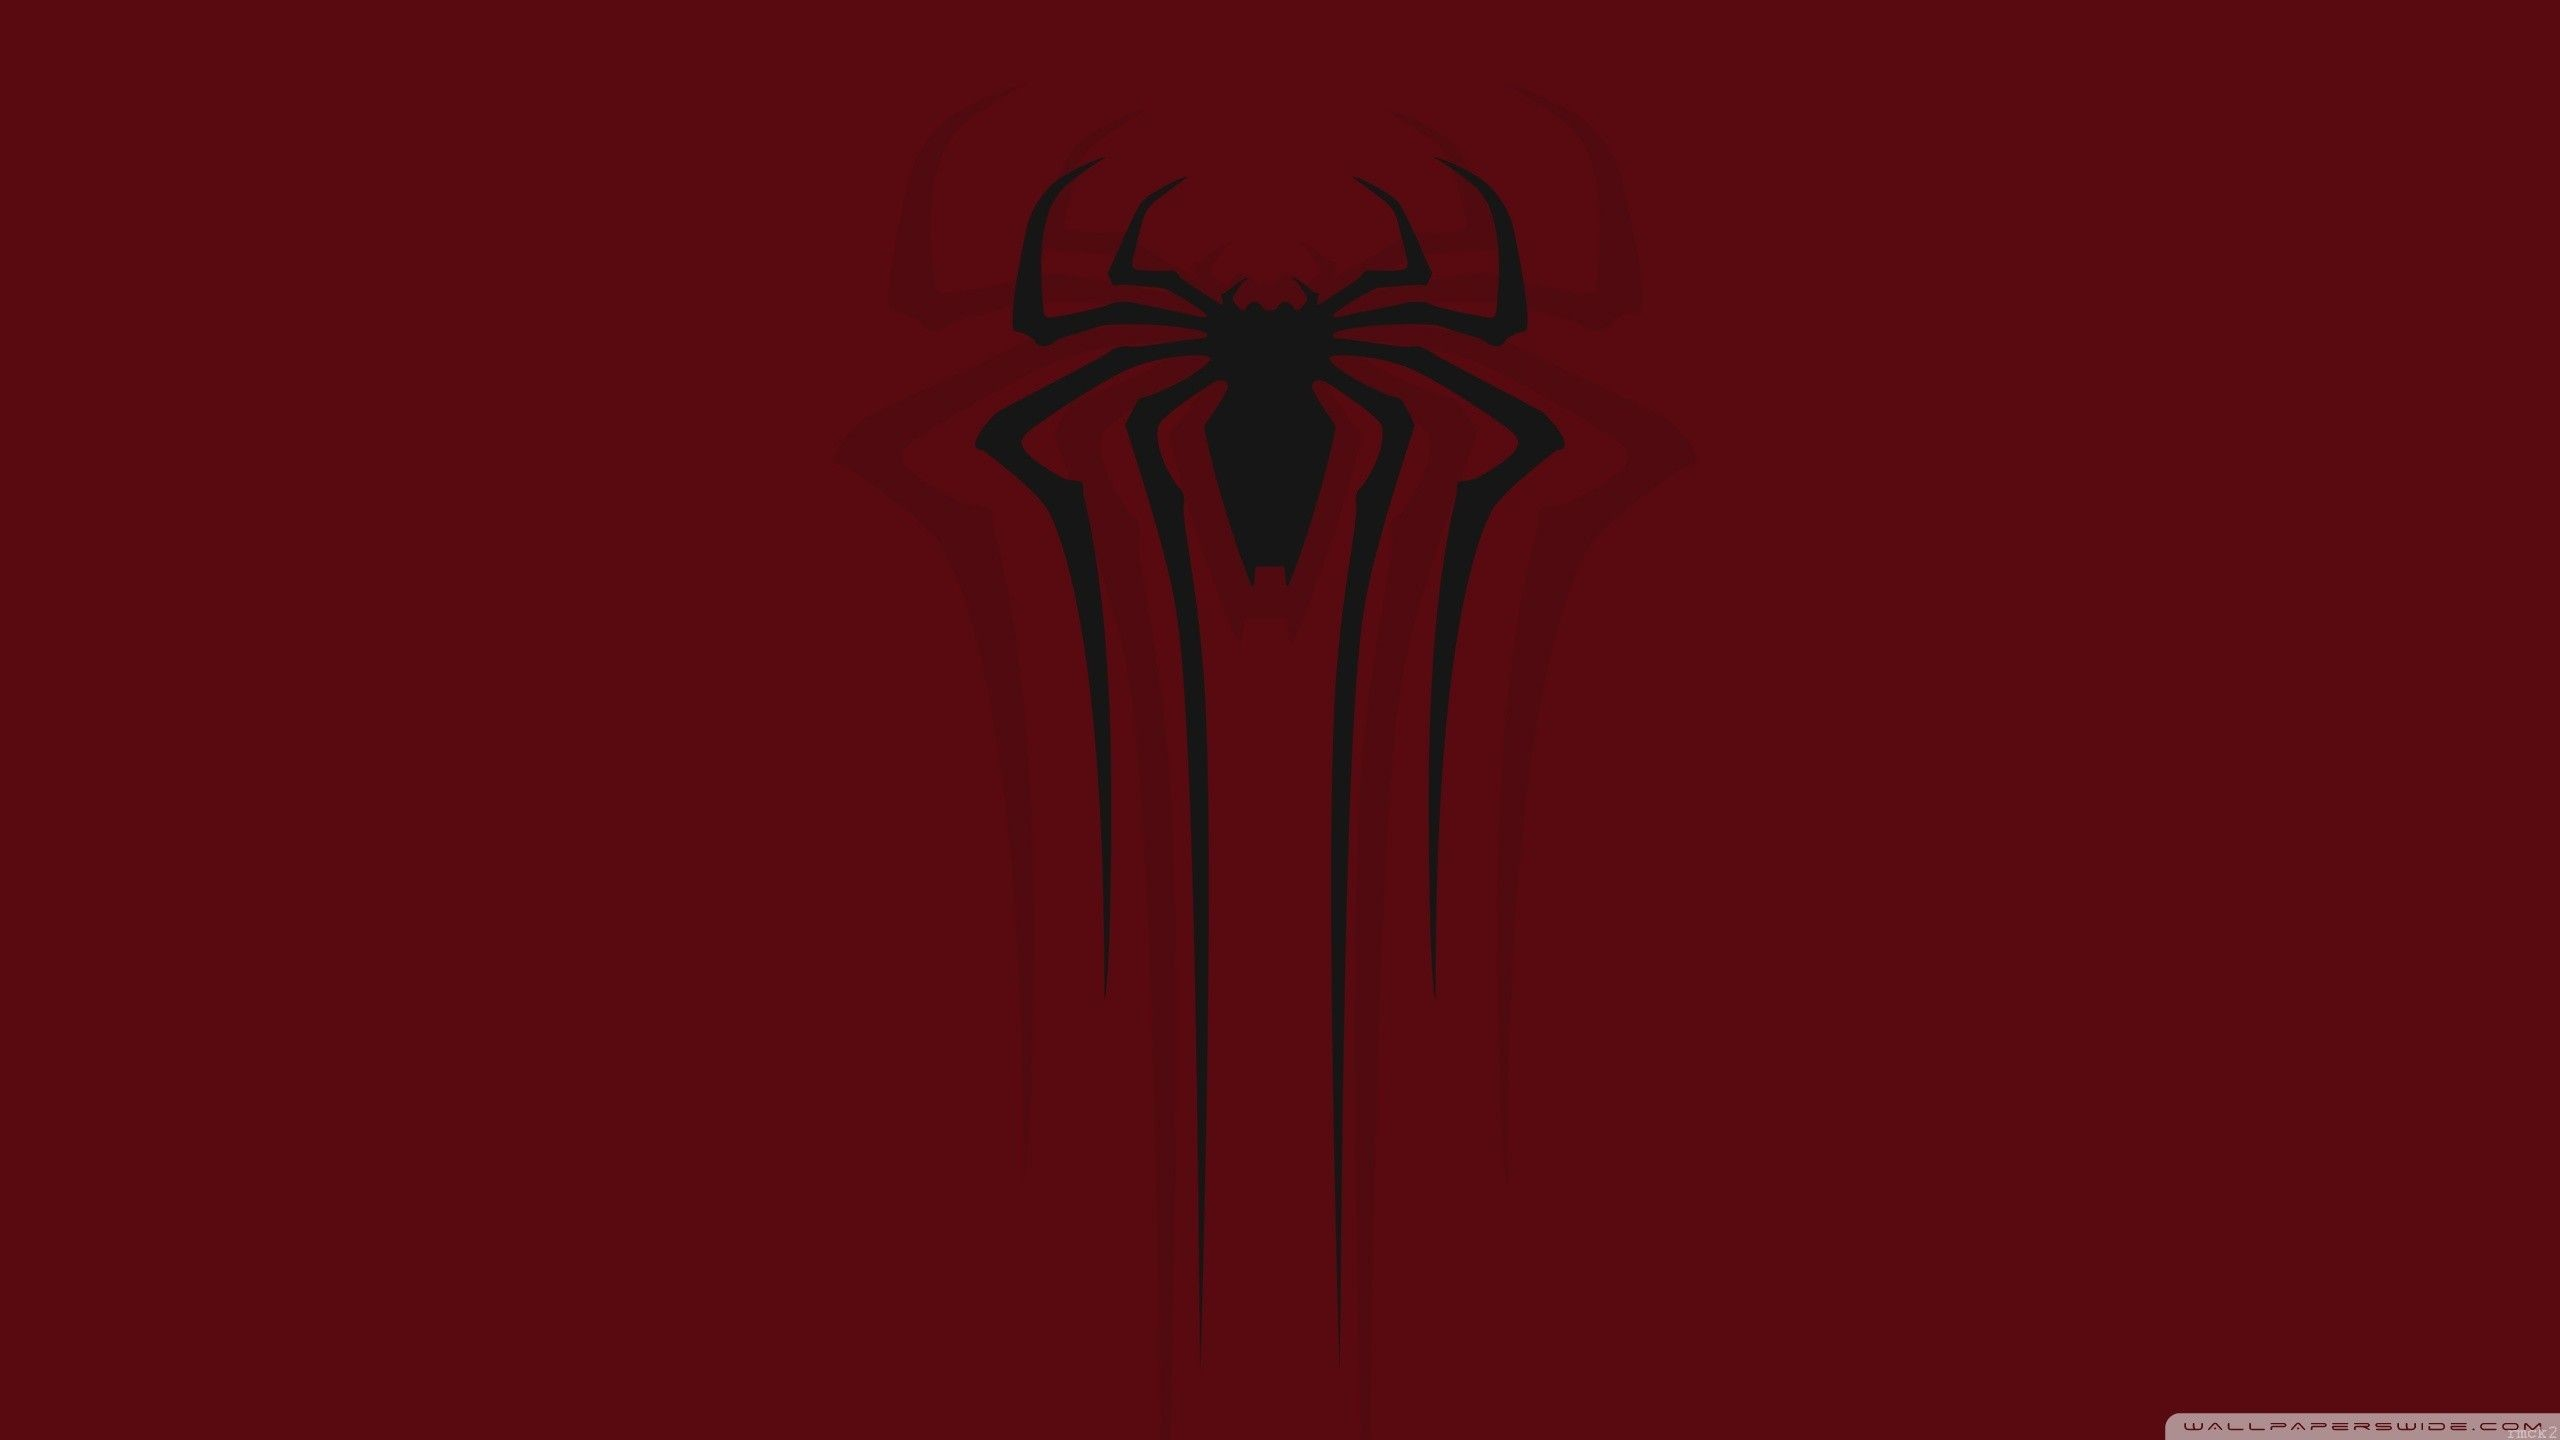 Res: 2560x1440, HD Spiderman Logo Wallpaper 35 - WallpaperWire